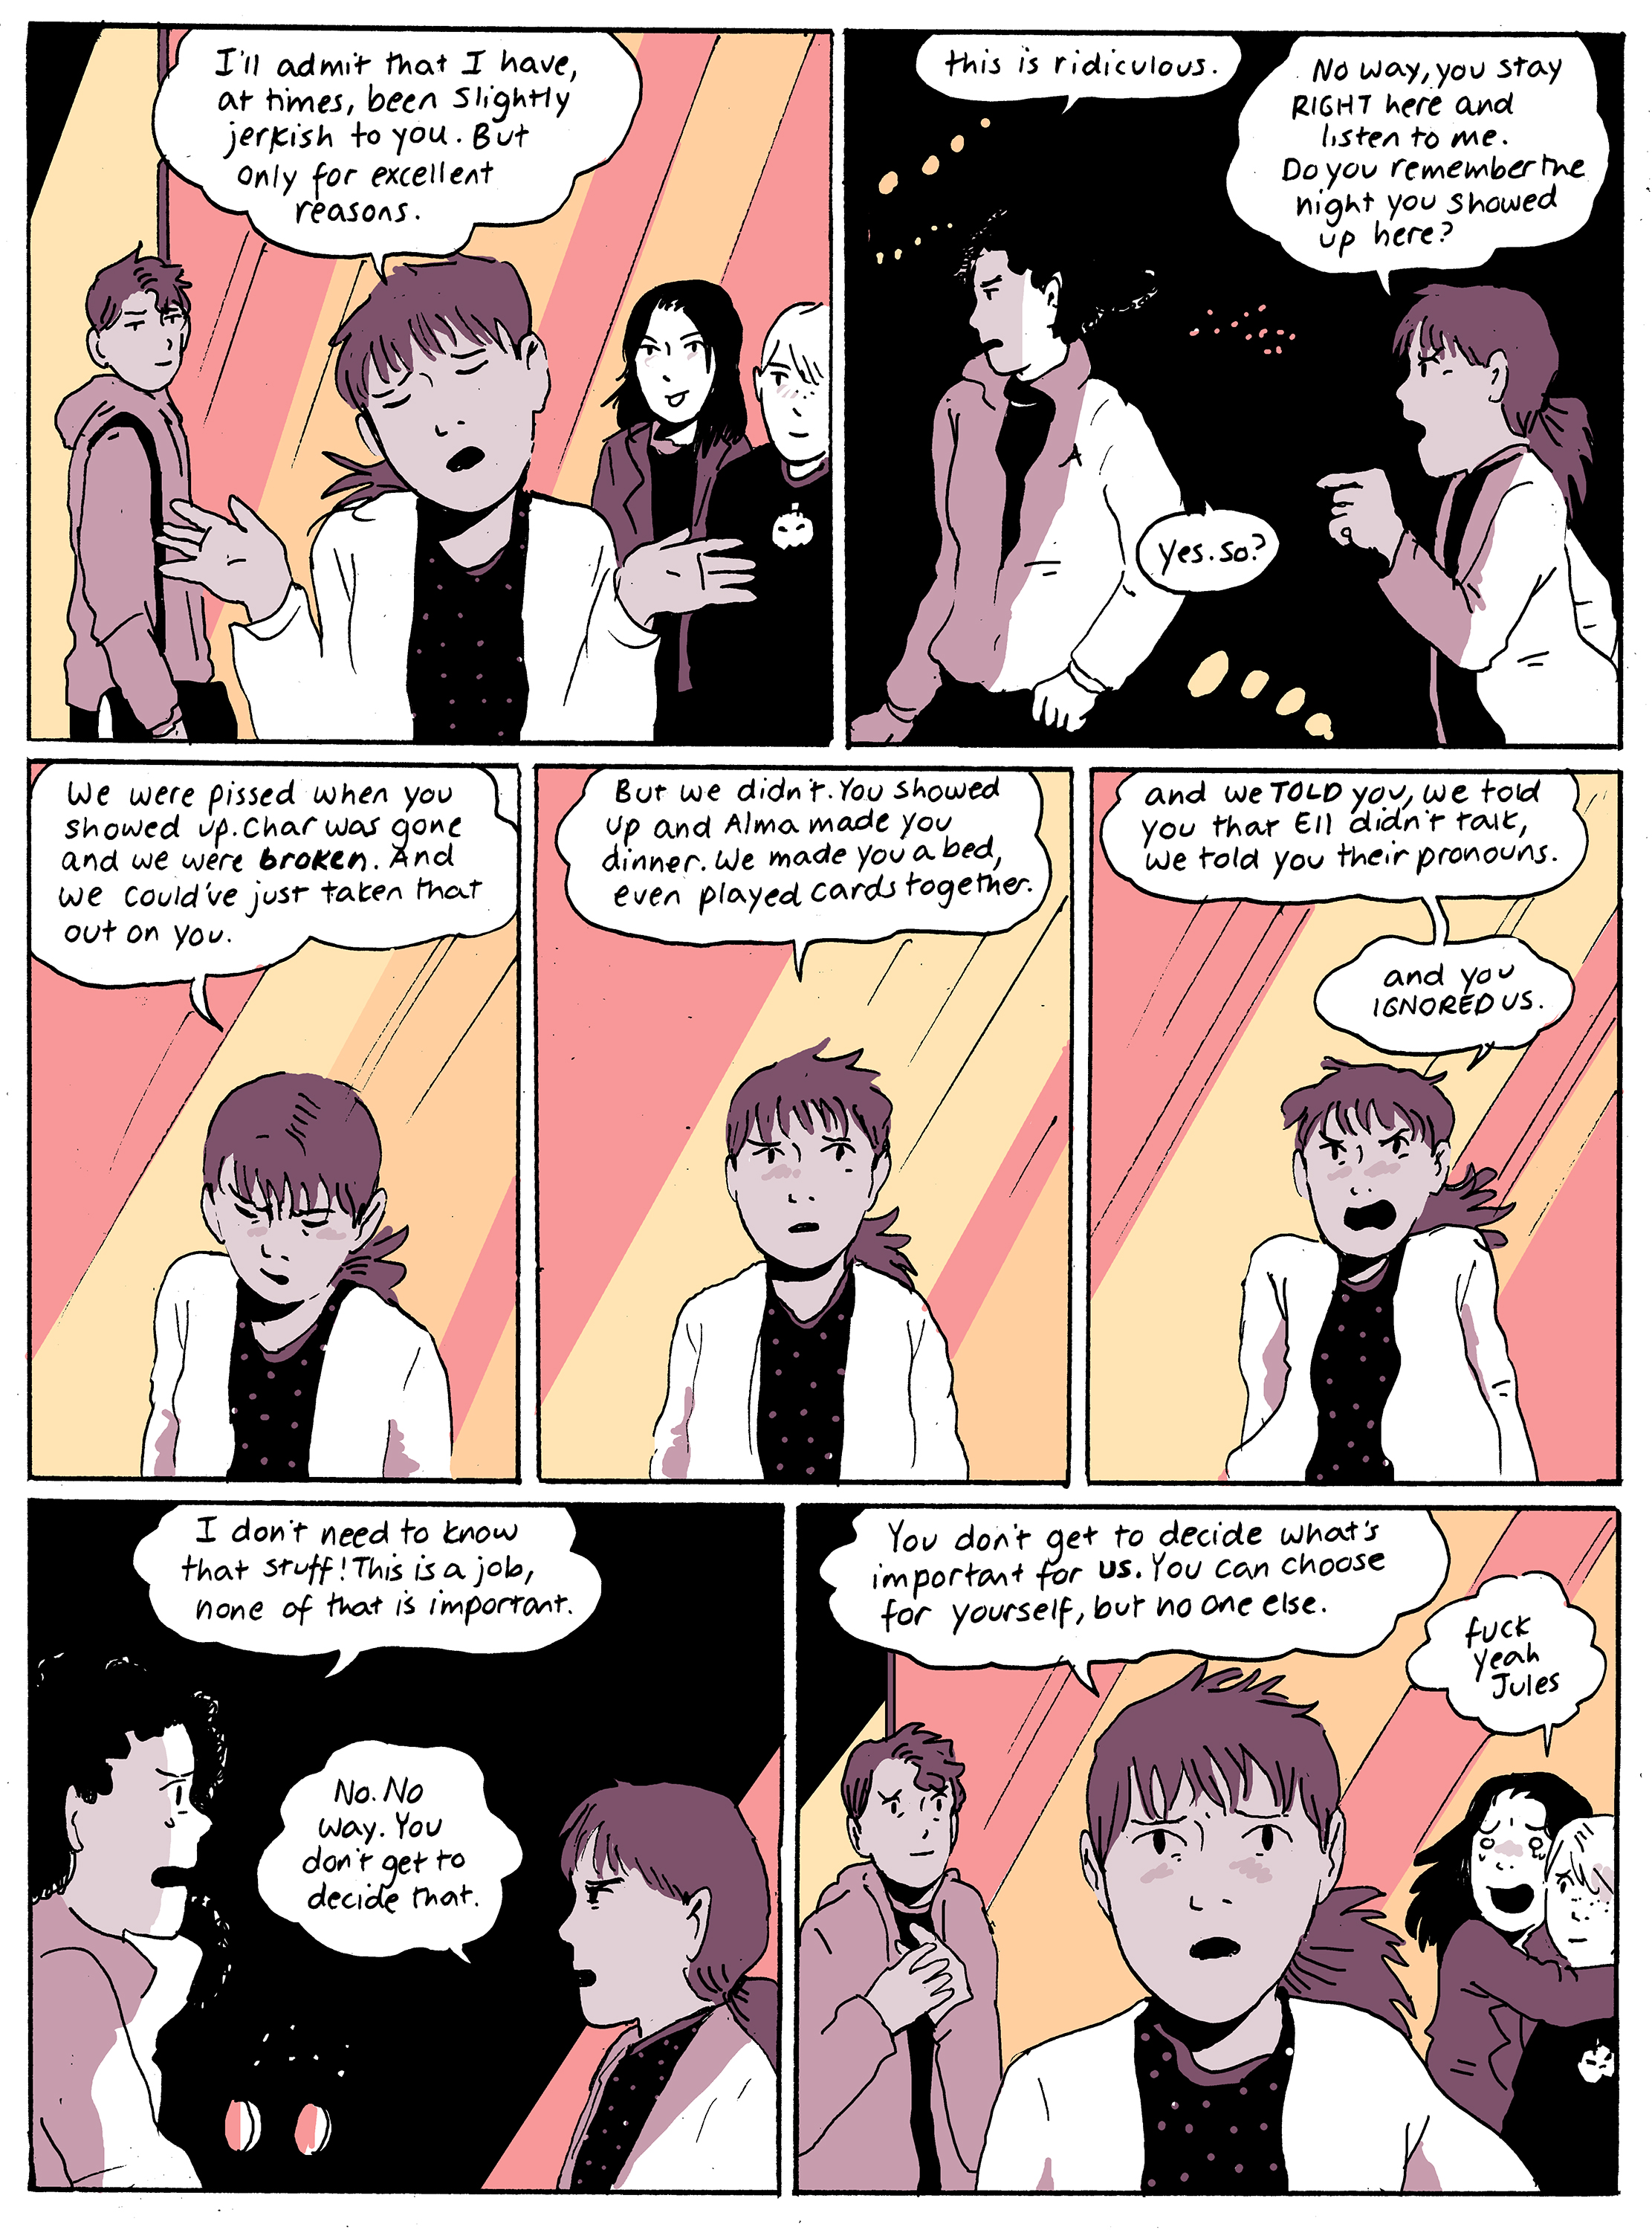 chapter13_page10.jpg